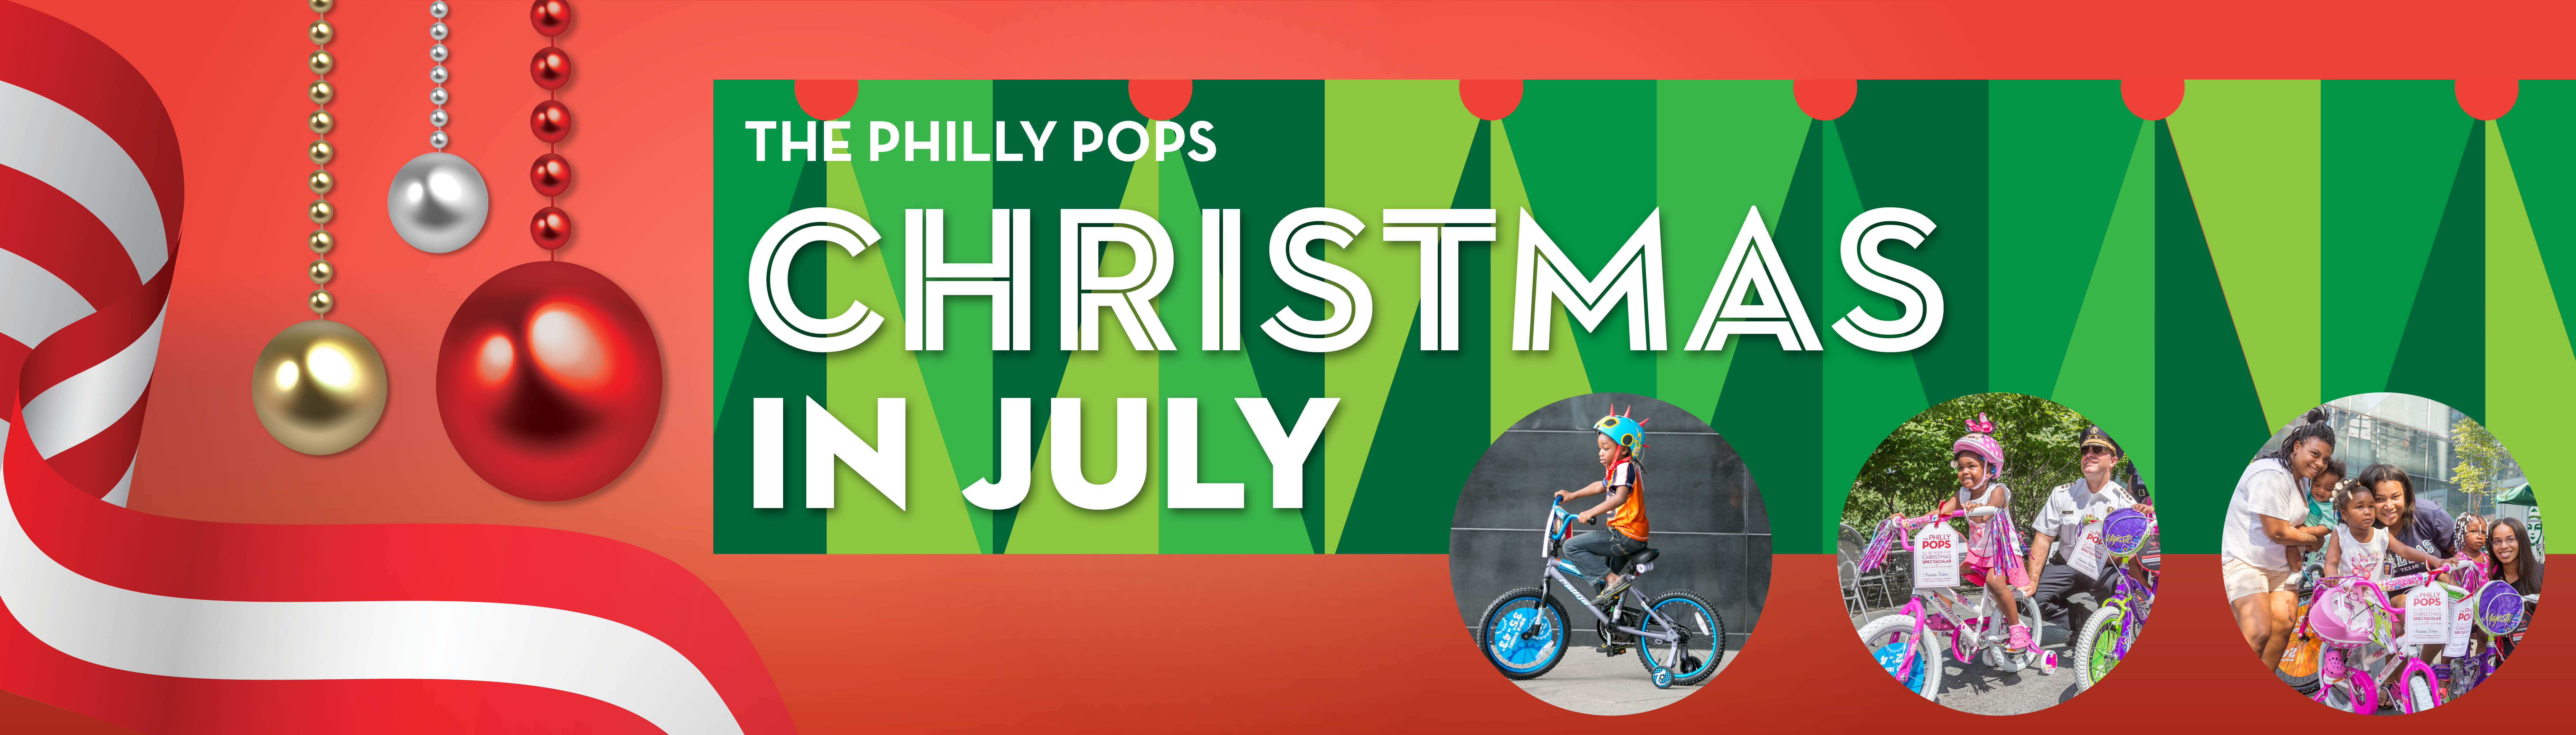 Christmas in July | The Philly Pops